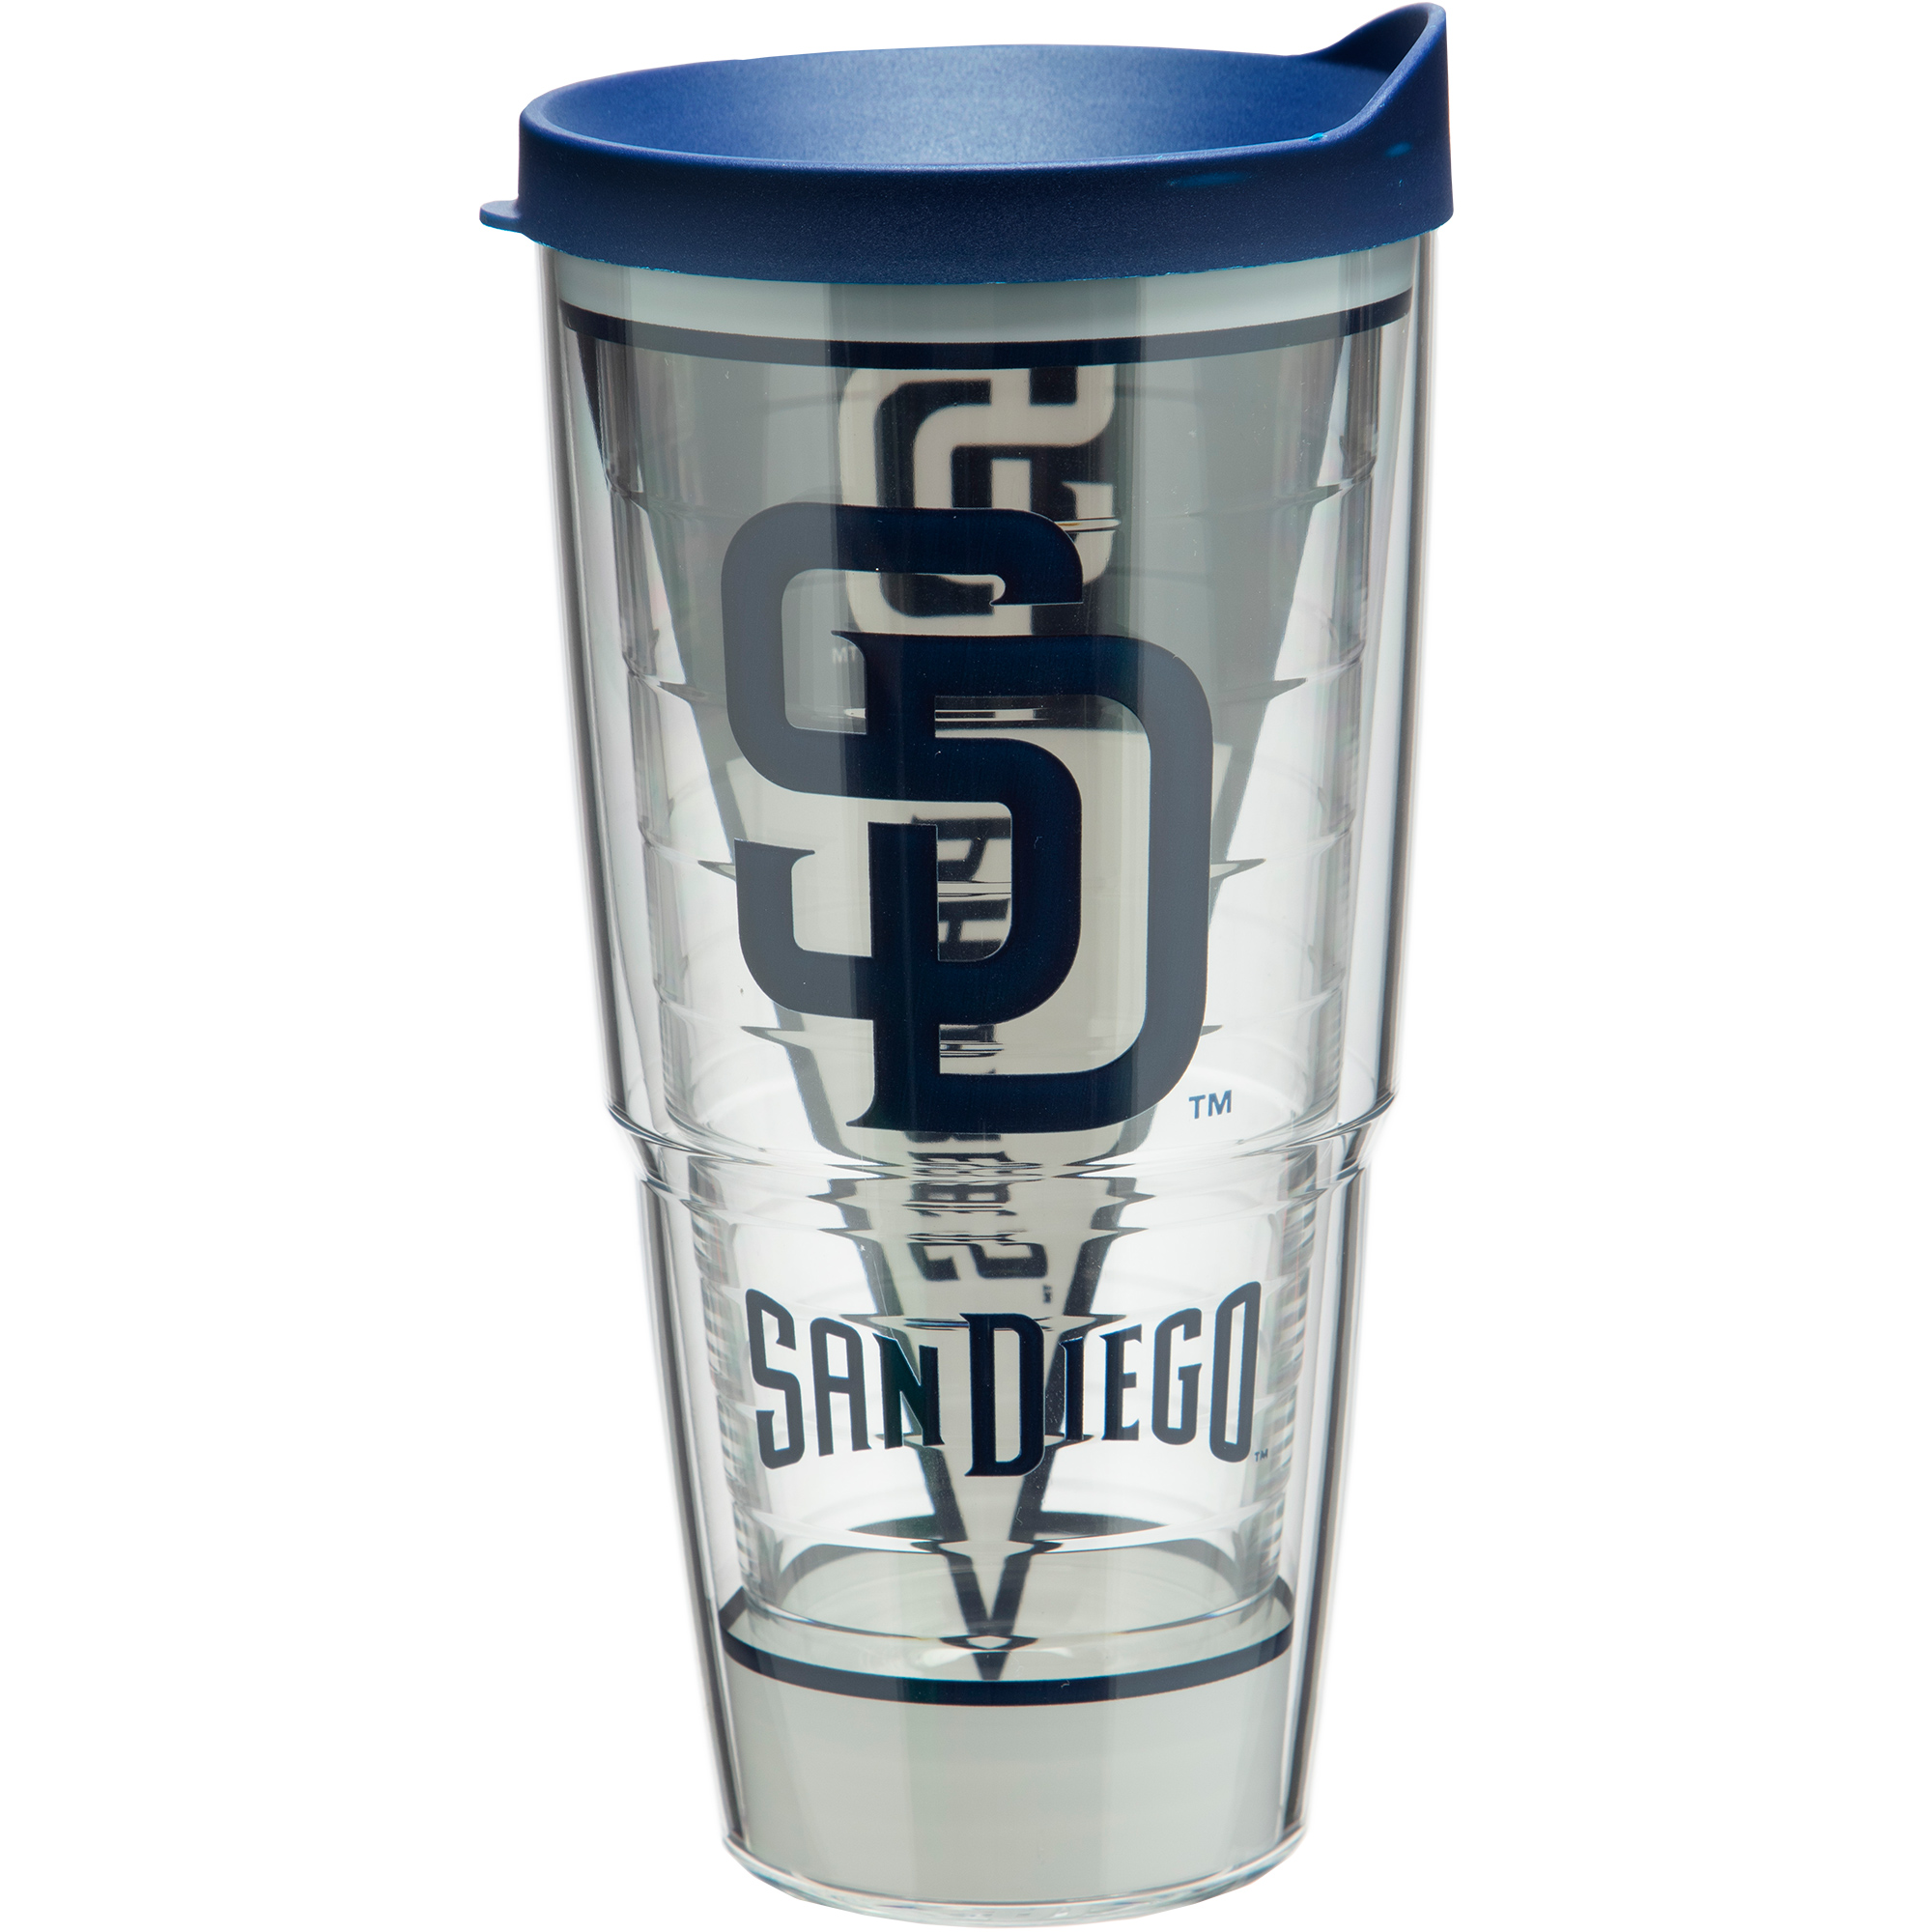 San Diego Padres Tervis 24oz. Batter Up Acrylic Tumbler - No Size